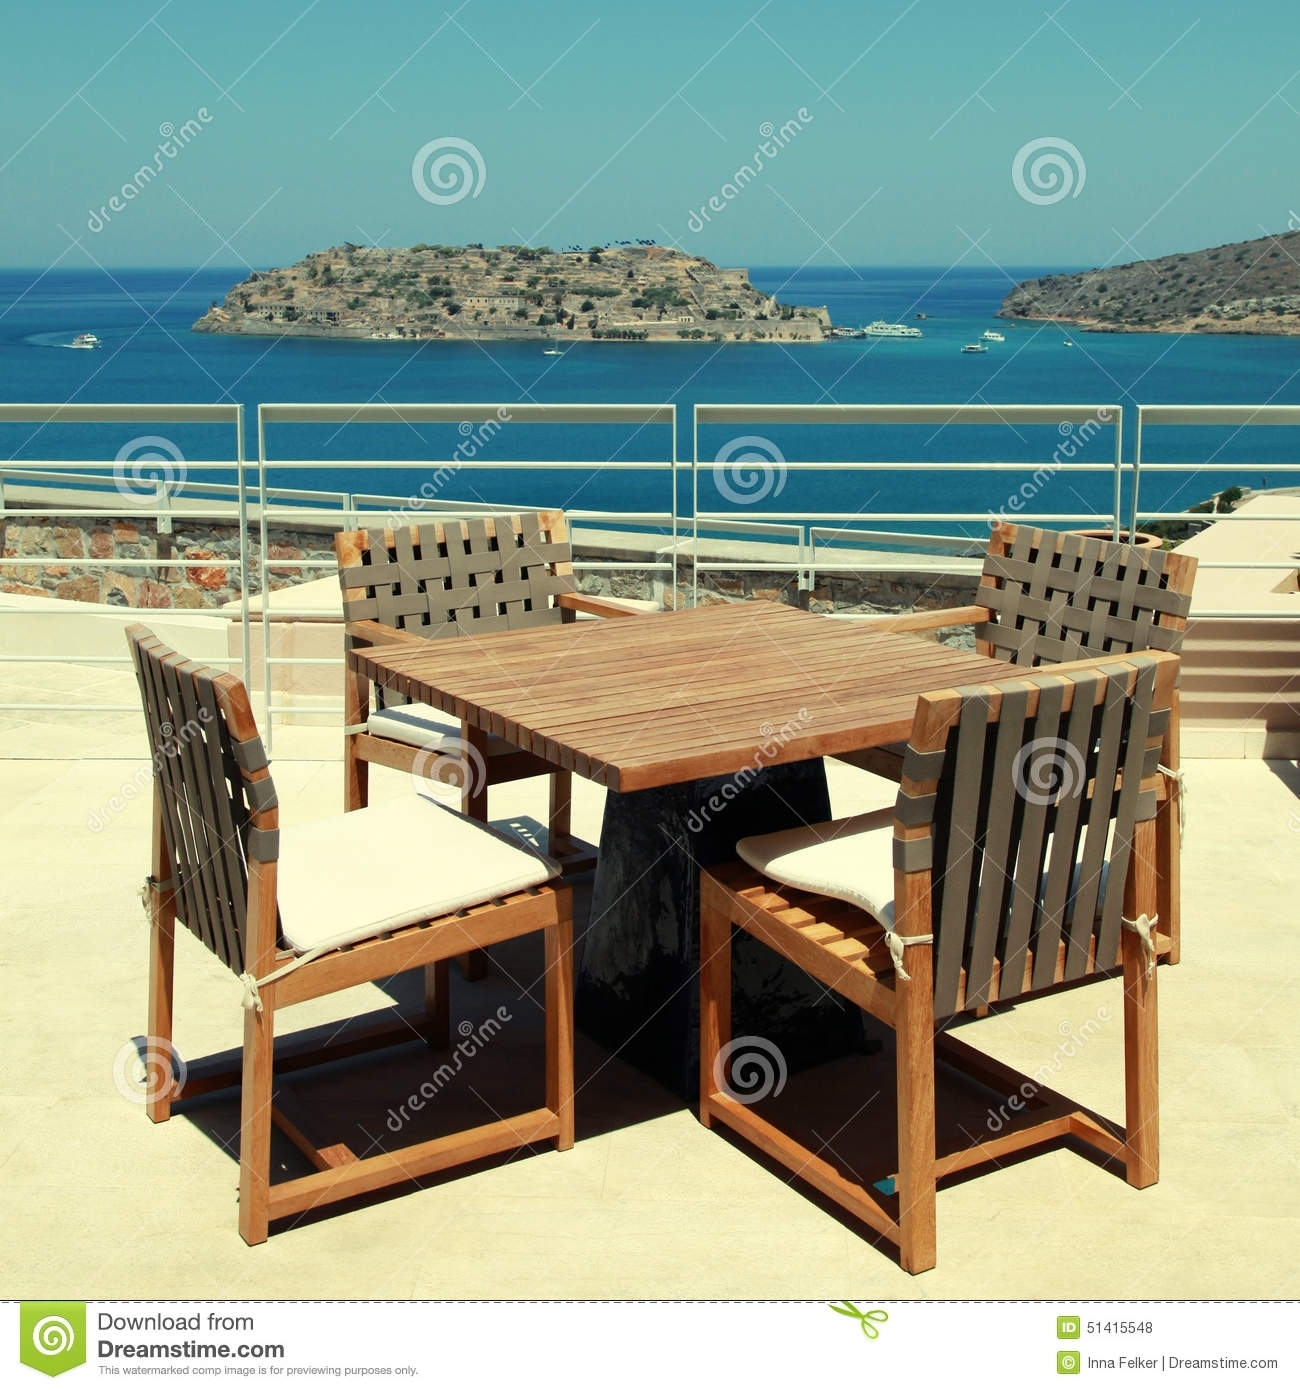 Image of: Outdoor Furniture In Summer Resortgreece Stock Photography Throughout Resort Outdoor Furniture Beautiful Resort Outdoor Furniture